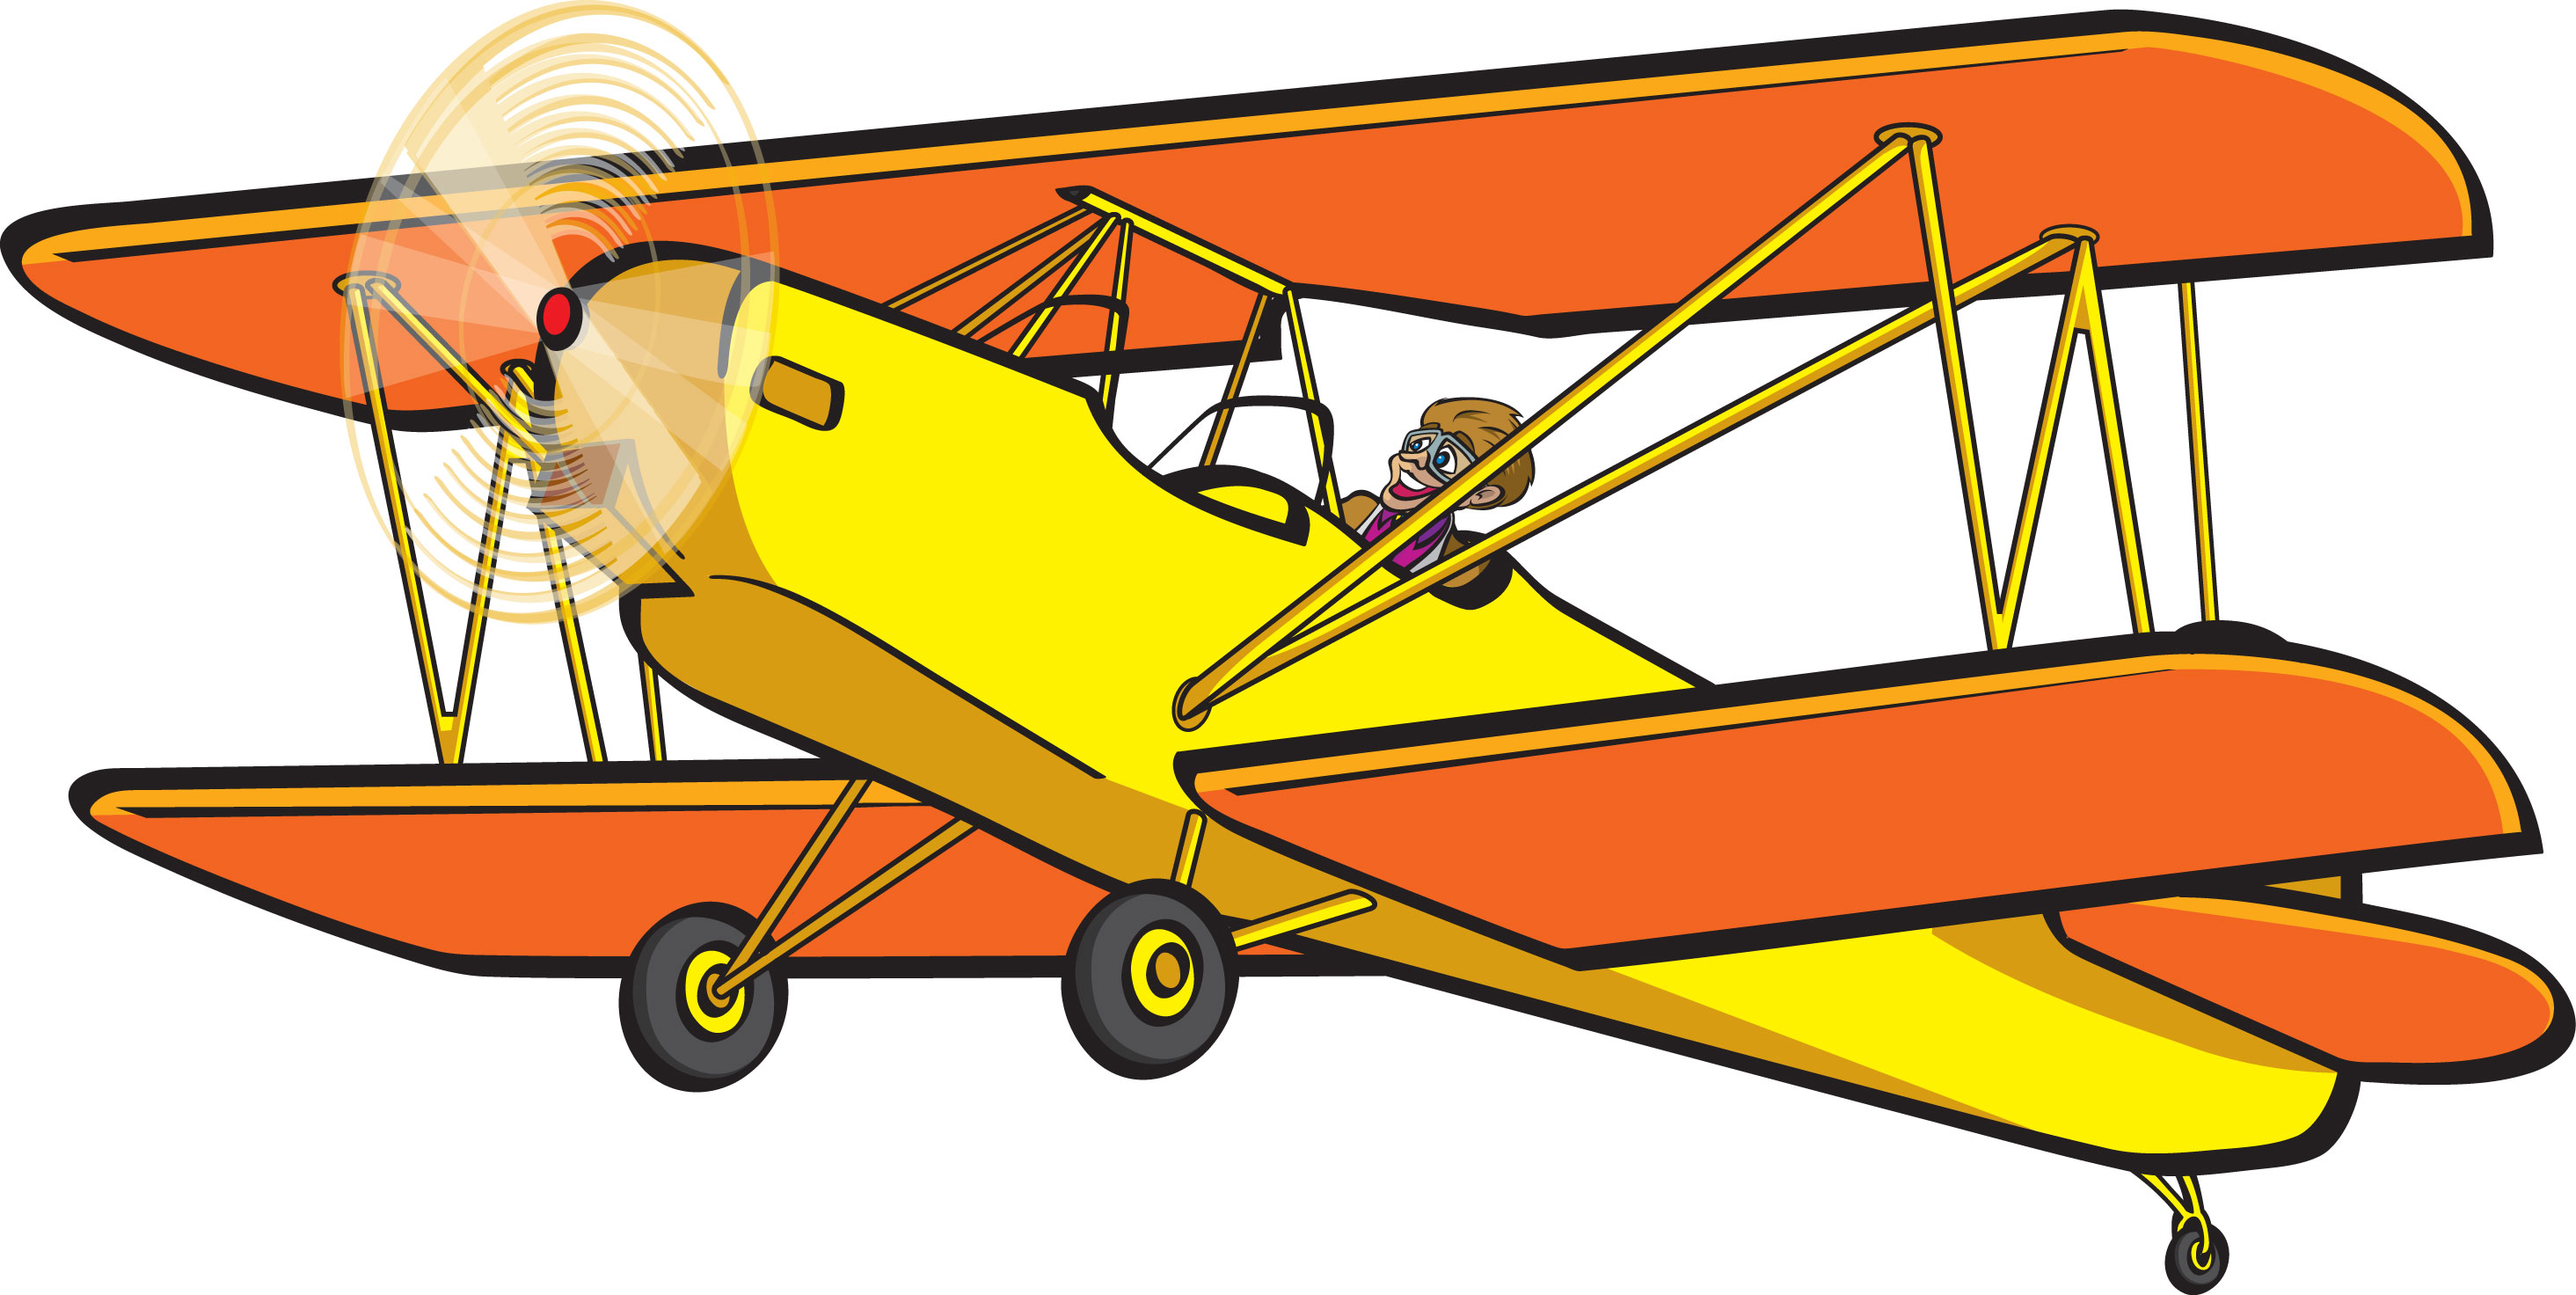 Biplane clipart old fashioned. Fashion at getdrawings com